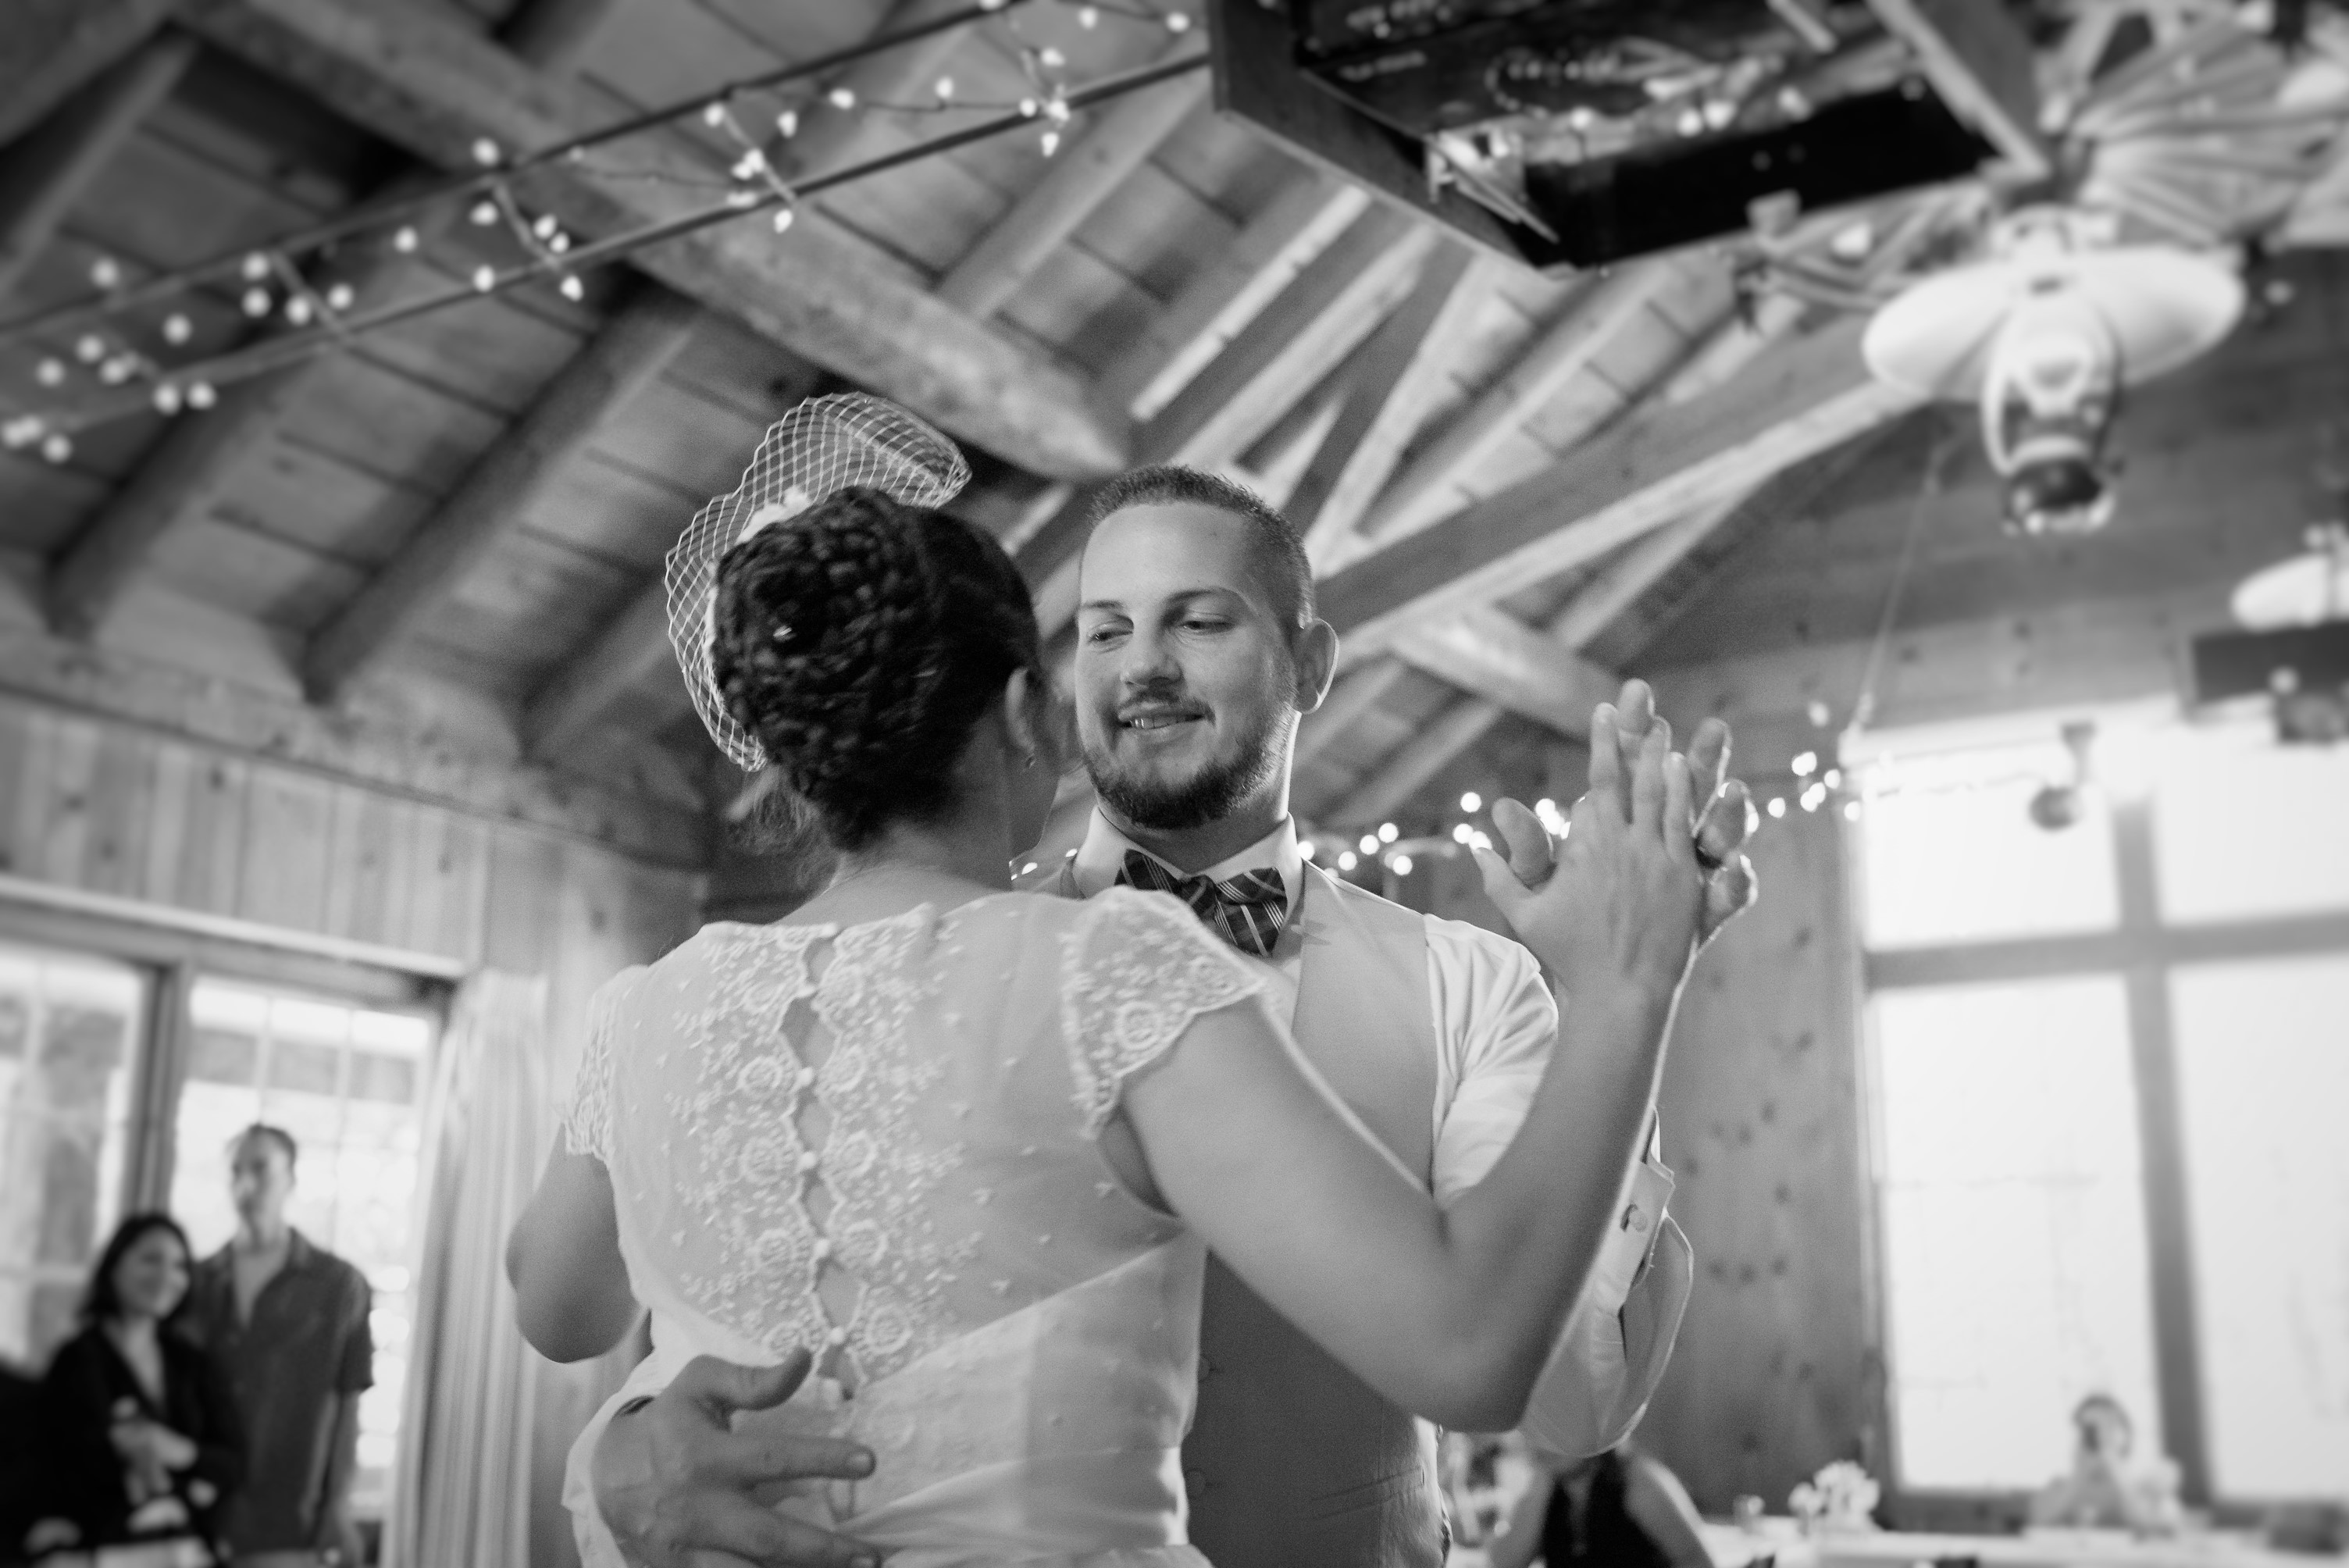 The Bride and Groom share their first dance.